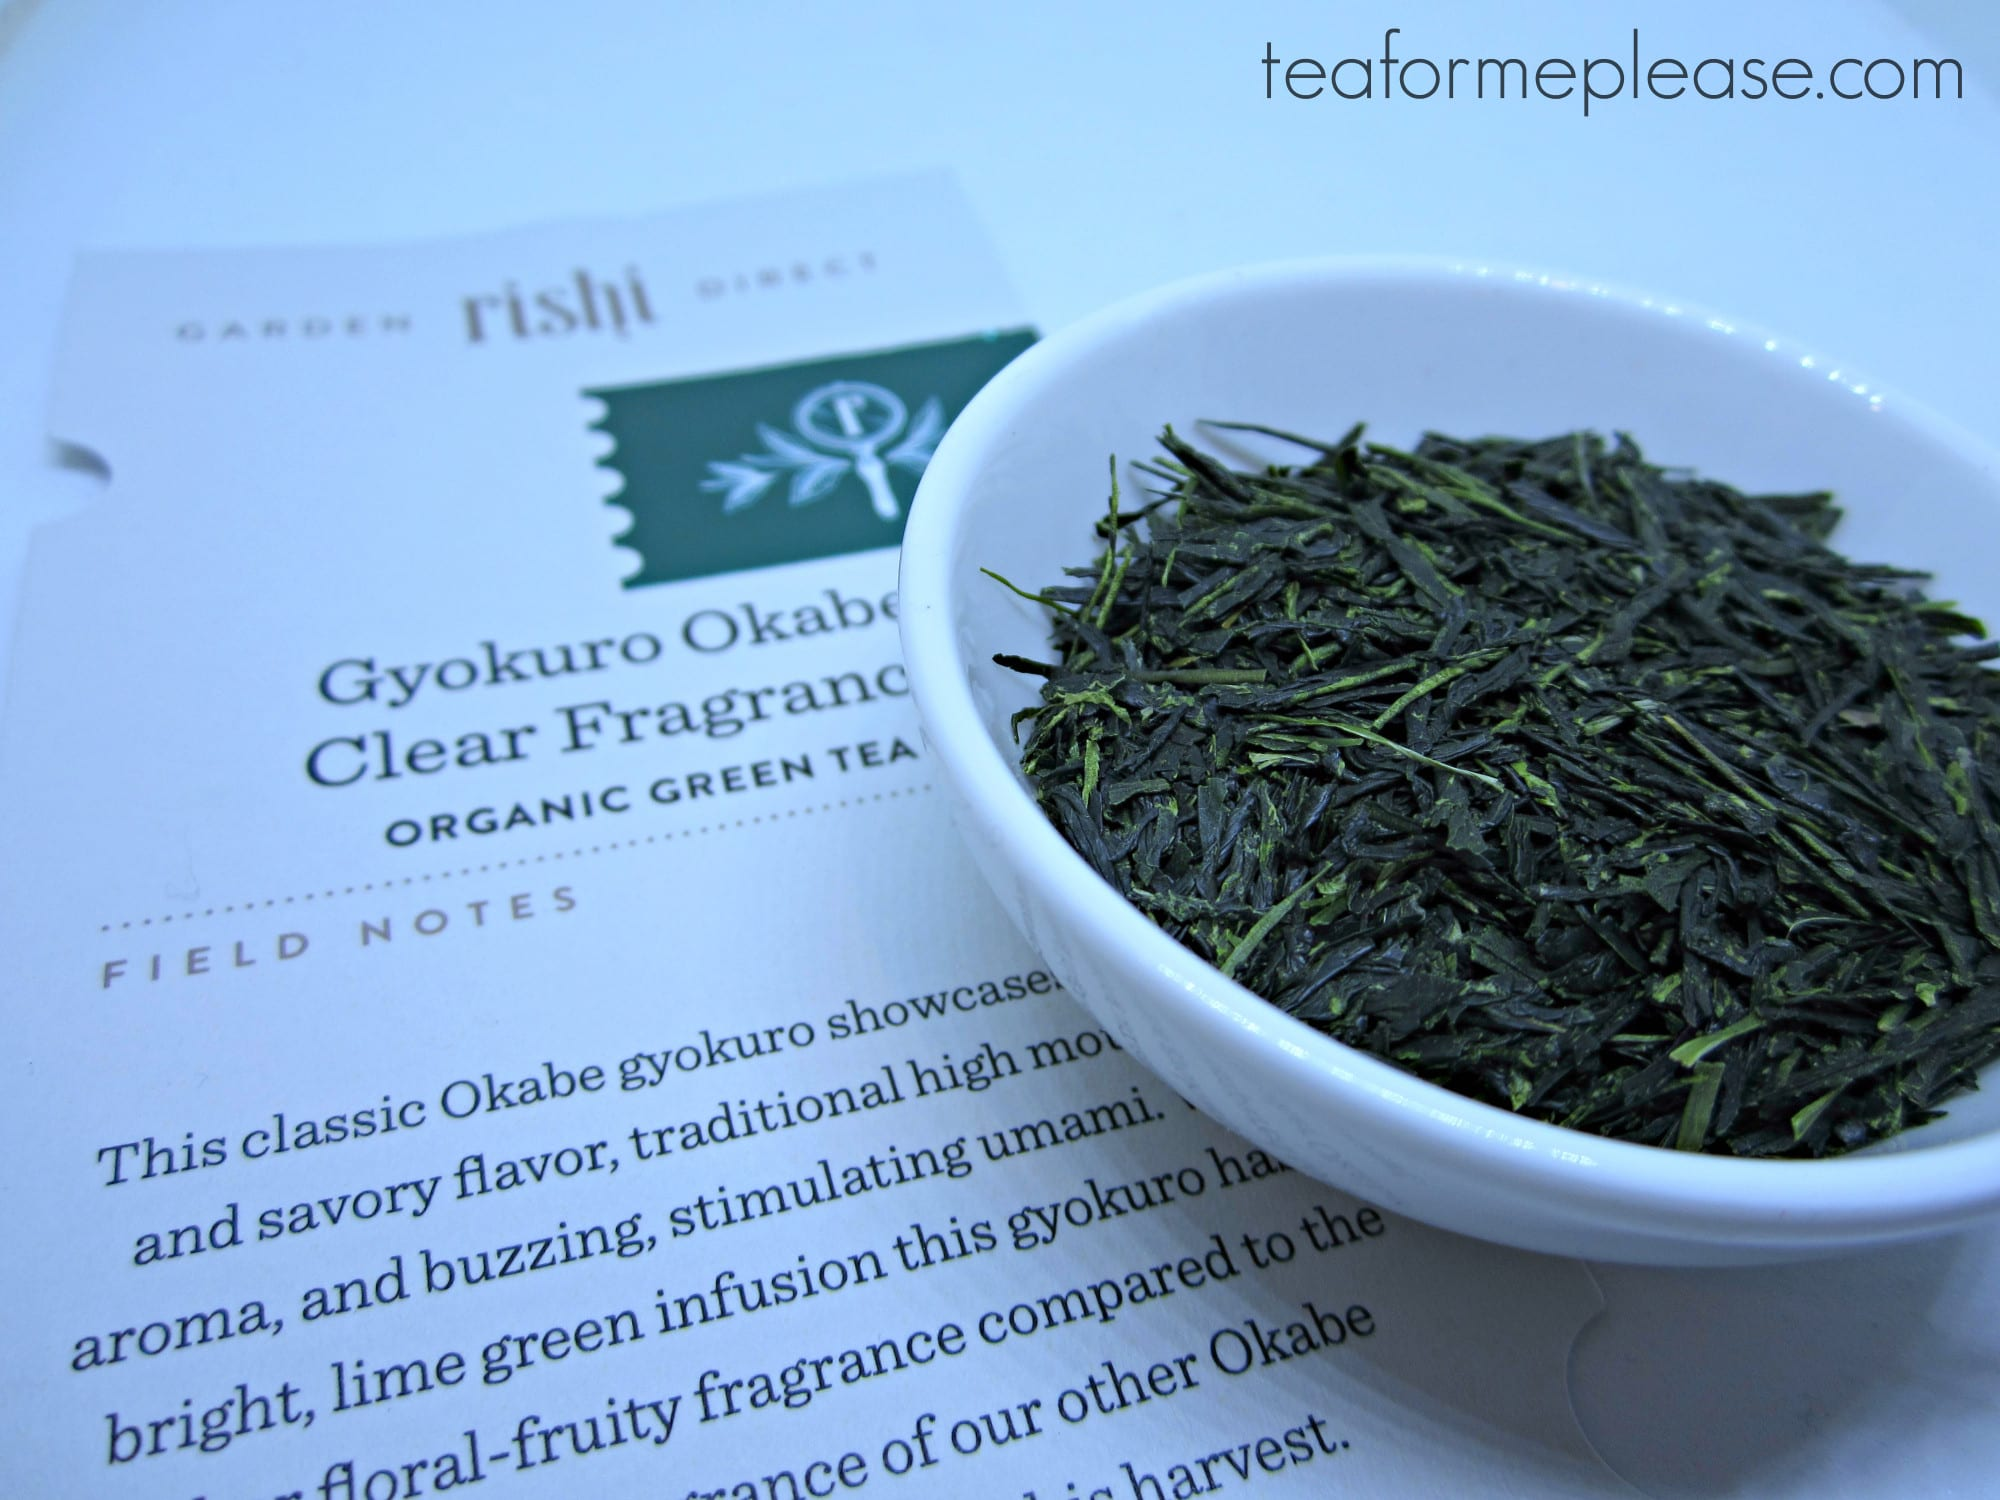 Rishi Tea Gyokuro Okabe Clear Fragrance